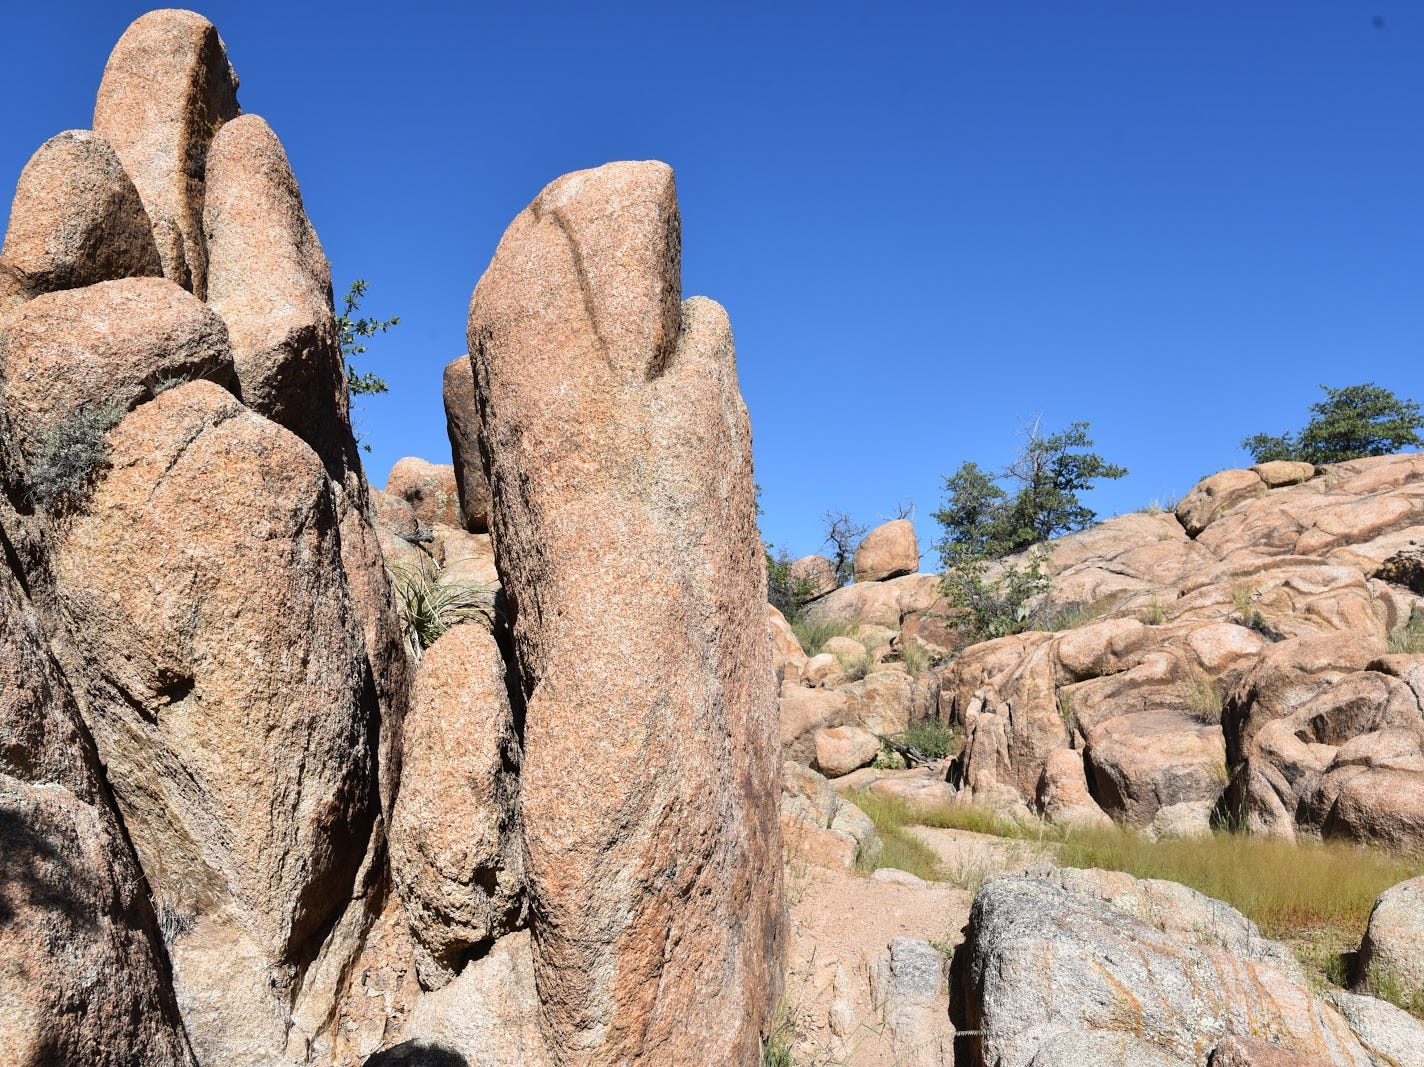 The Storm Trails explore Prescott's Granite Dells area.